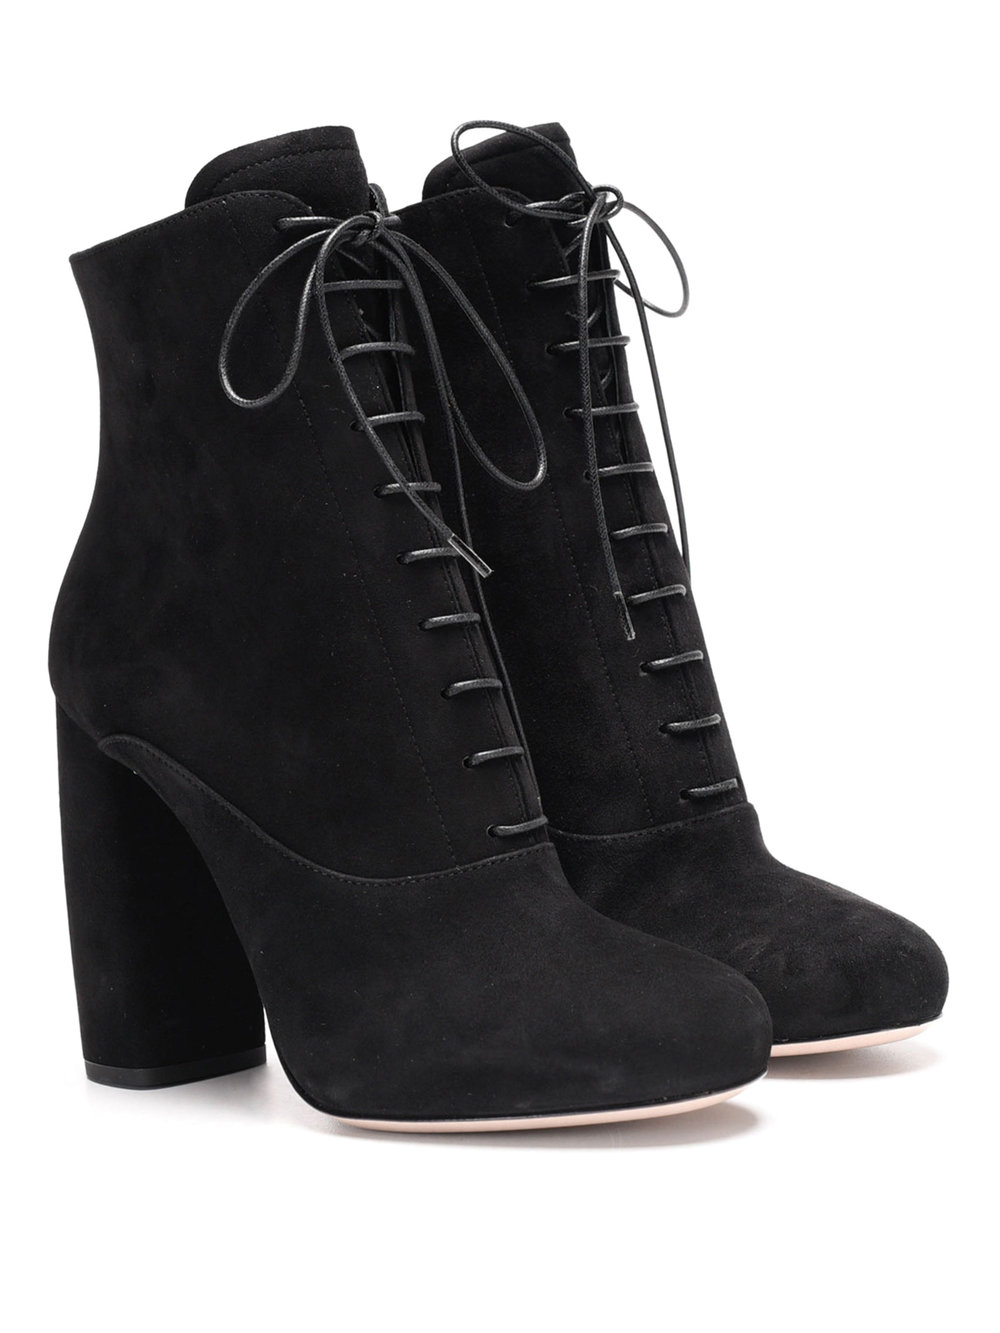 miu-miu-ankle-boots-online-laced-up-suede-ankle-boots-00000082738f00s002.jpg